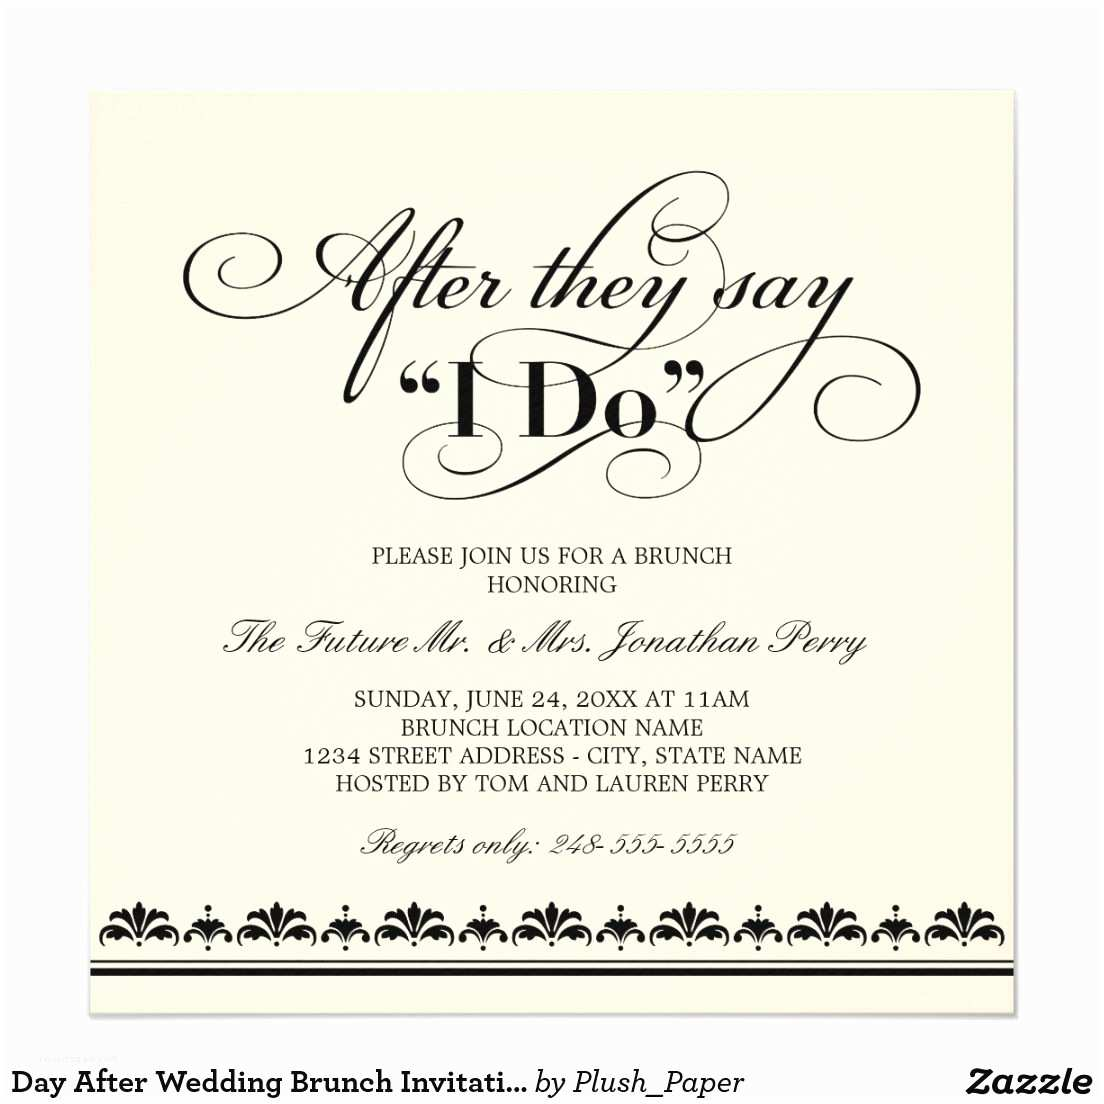 After Wedding Dinner Invitation Wording Day after Wedding Brunch Invitation